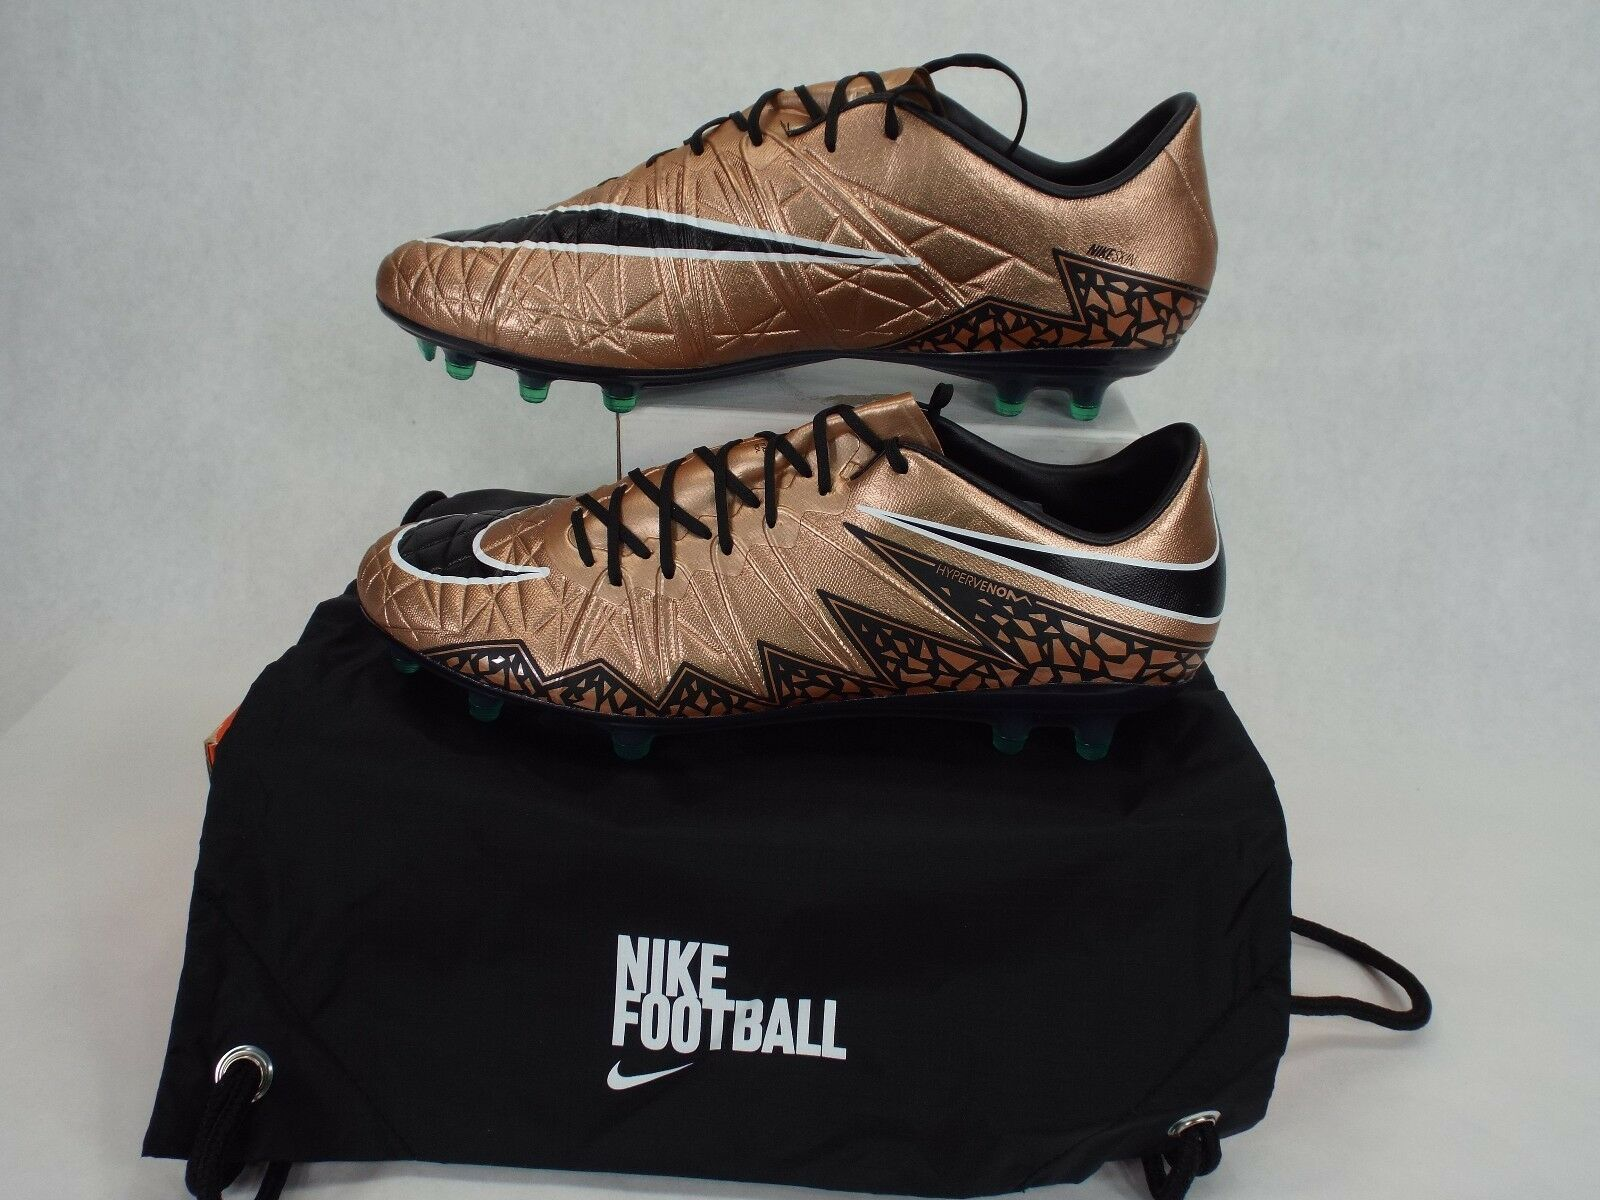 9152e27bacf7 ... coupon for new chaussures hommes 10.5 nike hypervenom phinish fg bronze  cleats chaussures new 200 749901